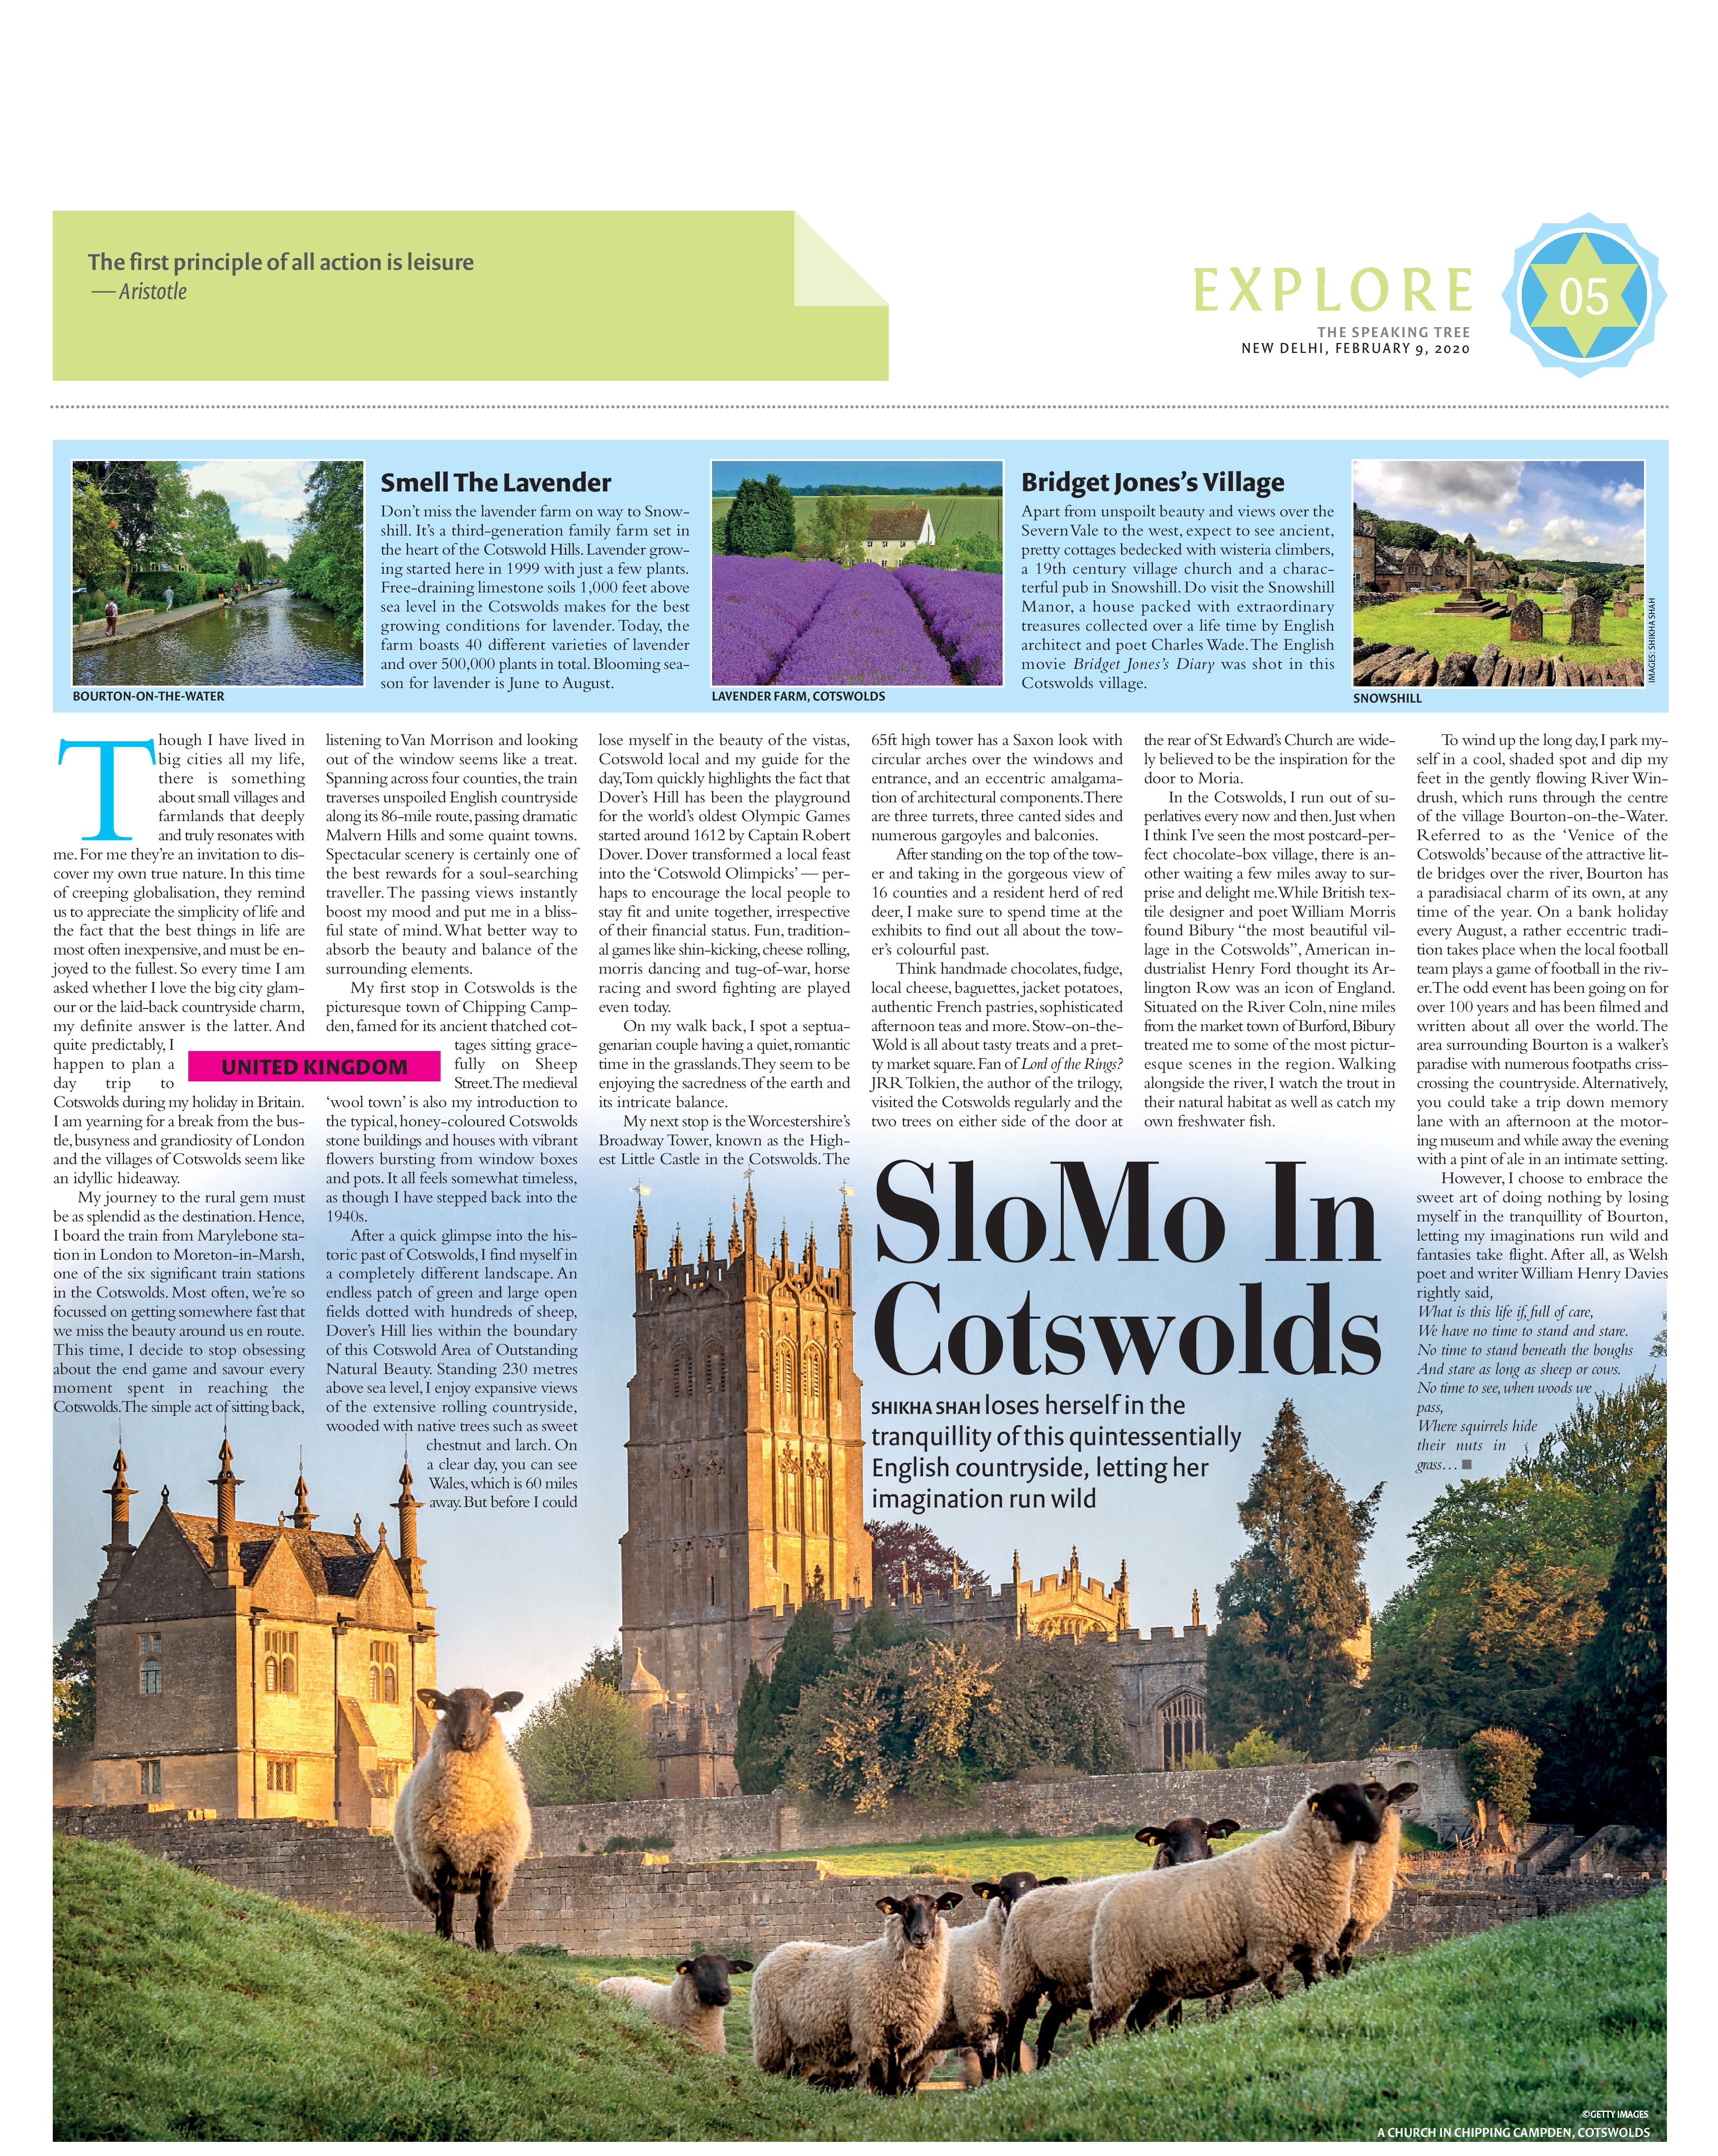 Cotswold, The Speaking Tree, TOI